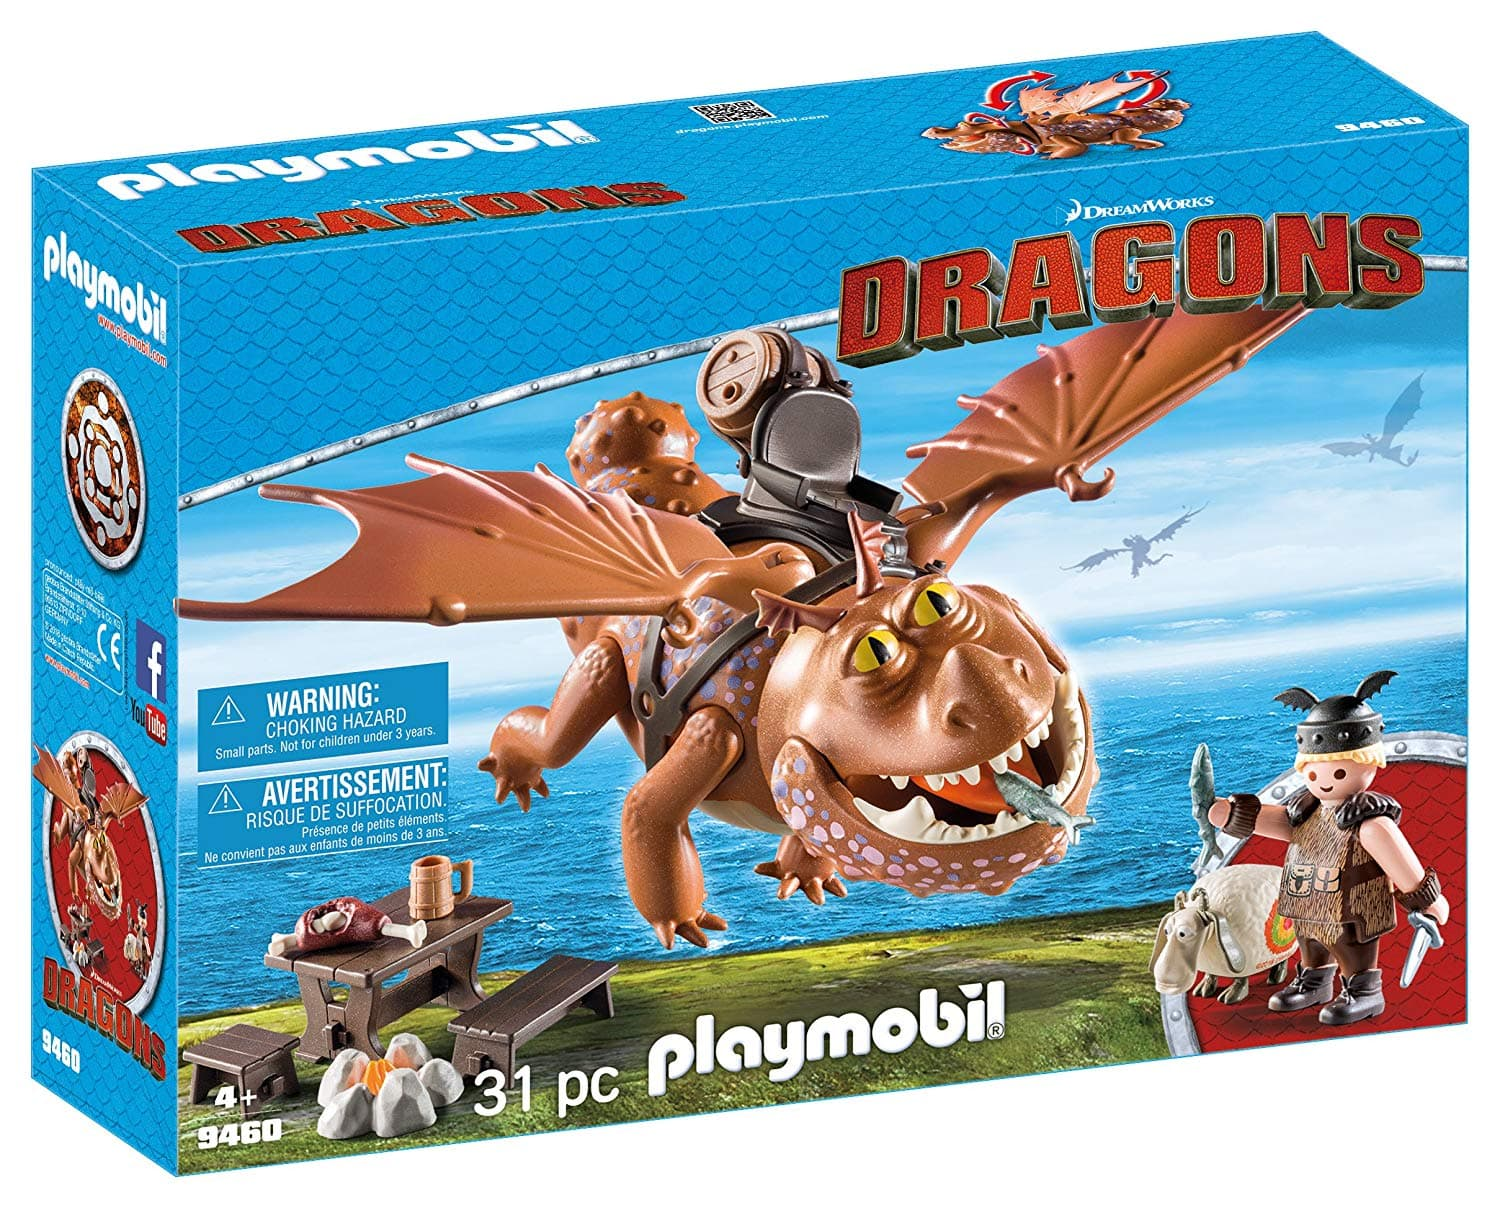 Playmobil 9460 How to Train Your Dragon Fishlegs  Meatlug, Multicolor - $14.85 at Amazon